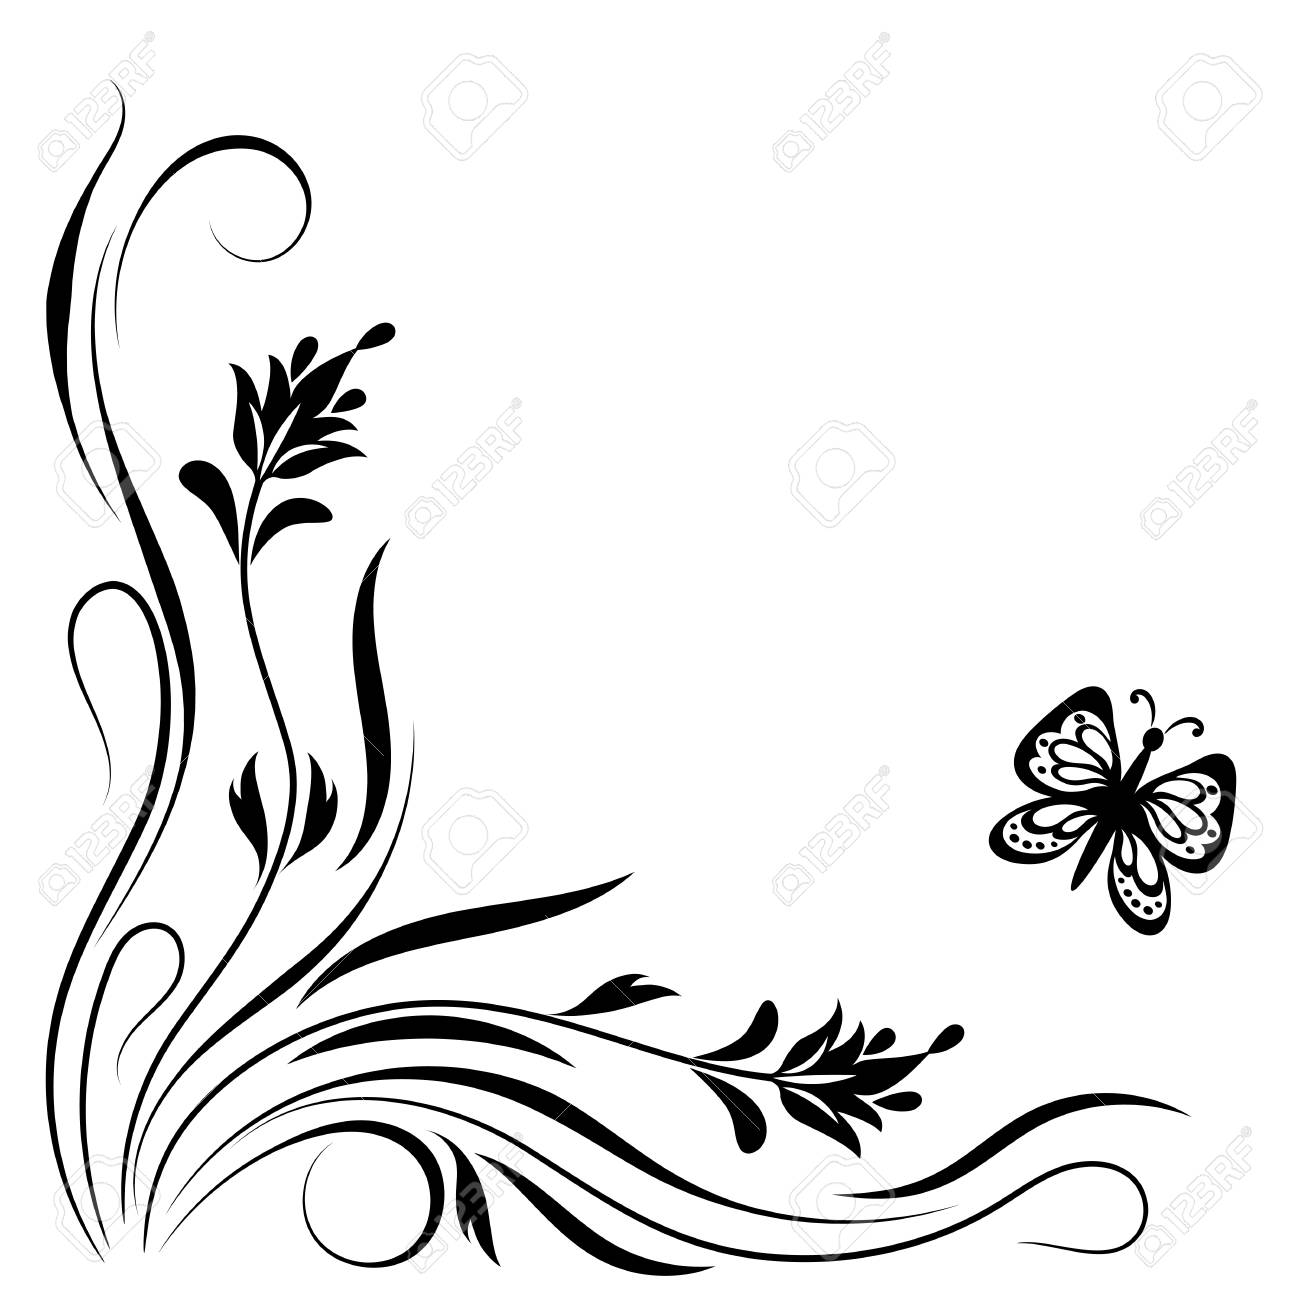 decorative floral corner ornament with flowers and butterfly royalty free cliparts vectors and stock illustration image 82895071 decorative floral corner ornament with flowers and butterfly